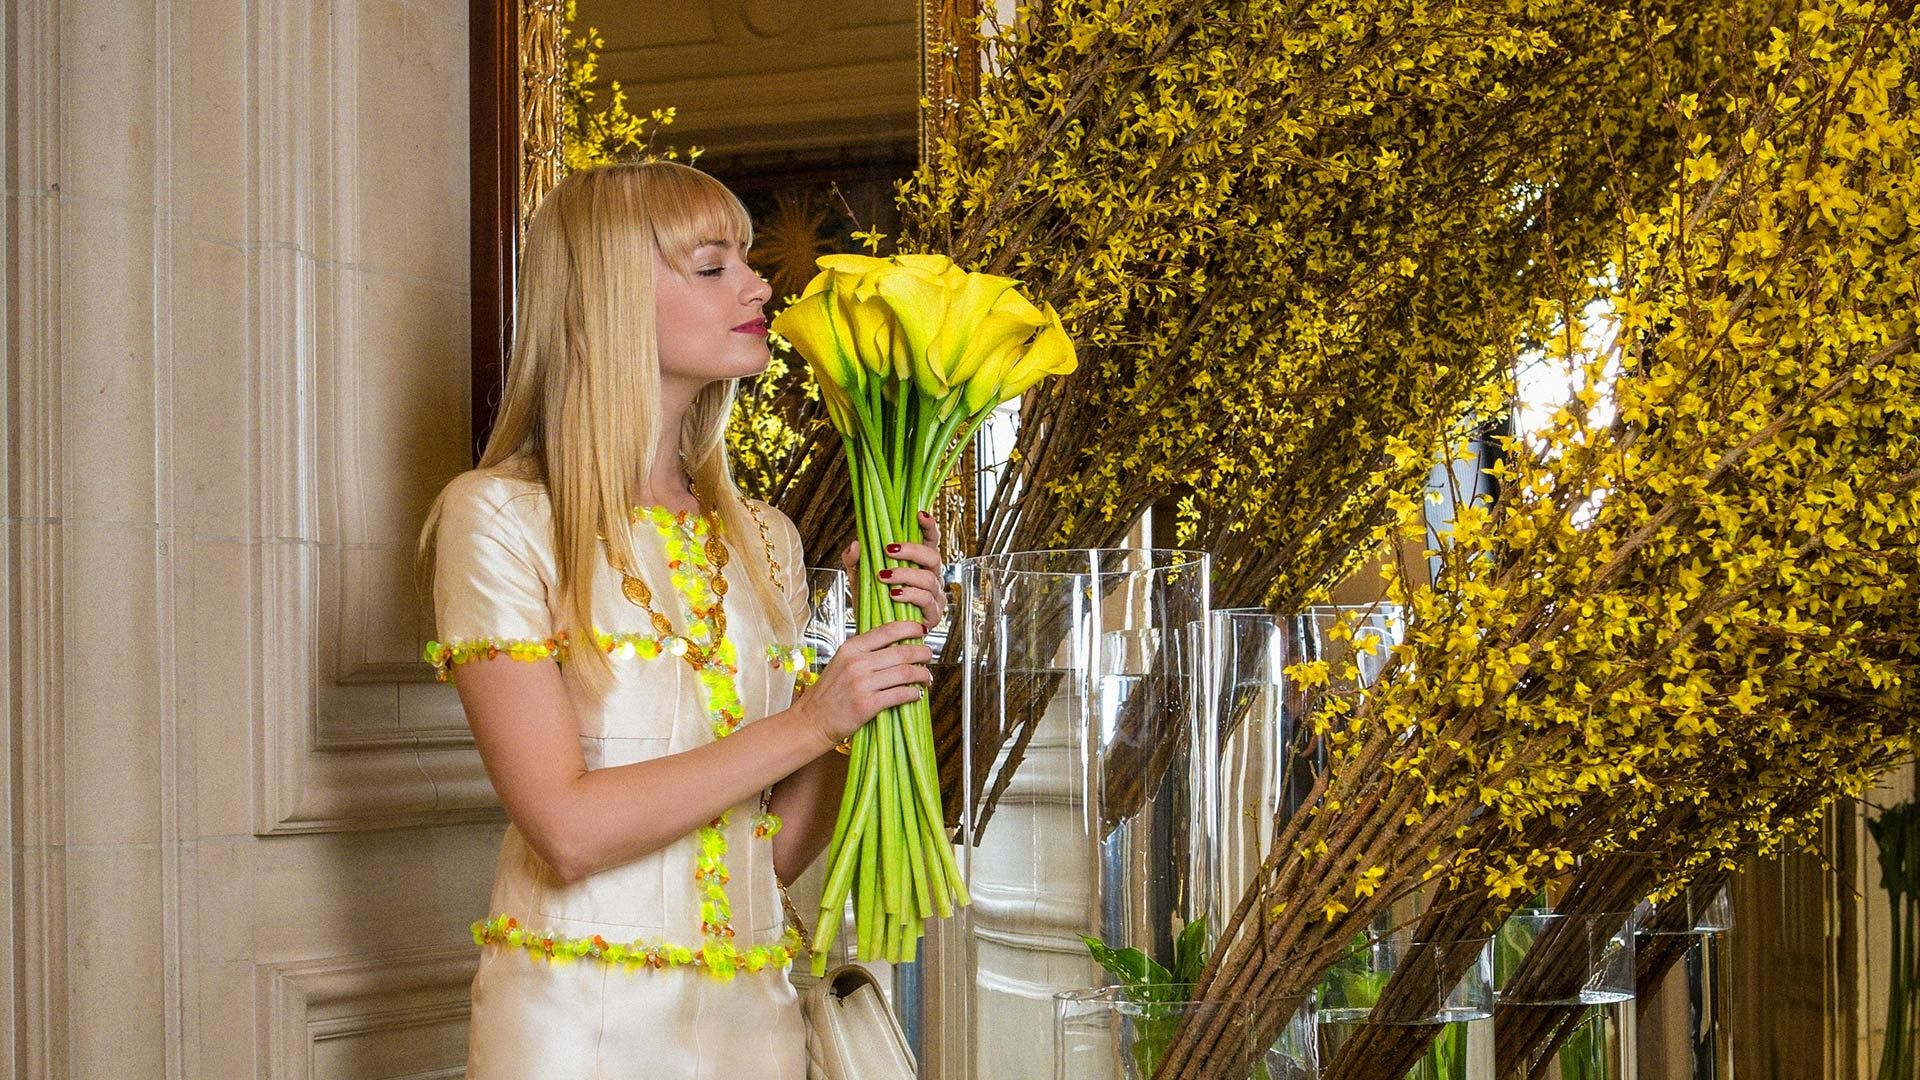 Beth Behrs smelling yellow calla lilies.